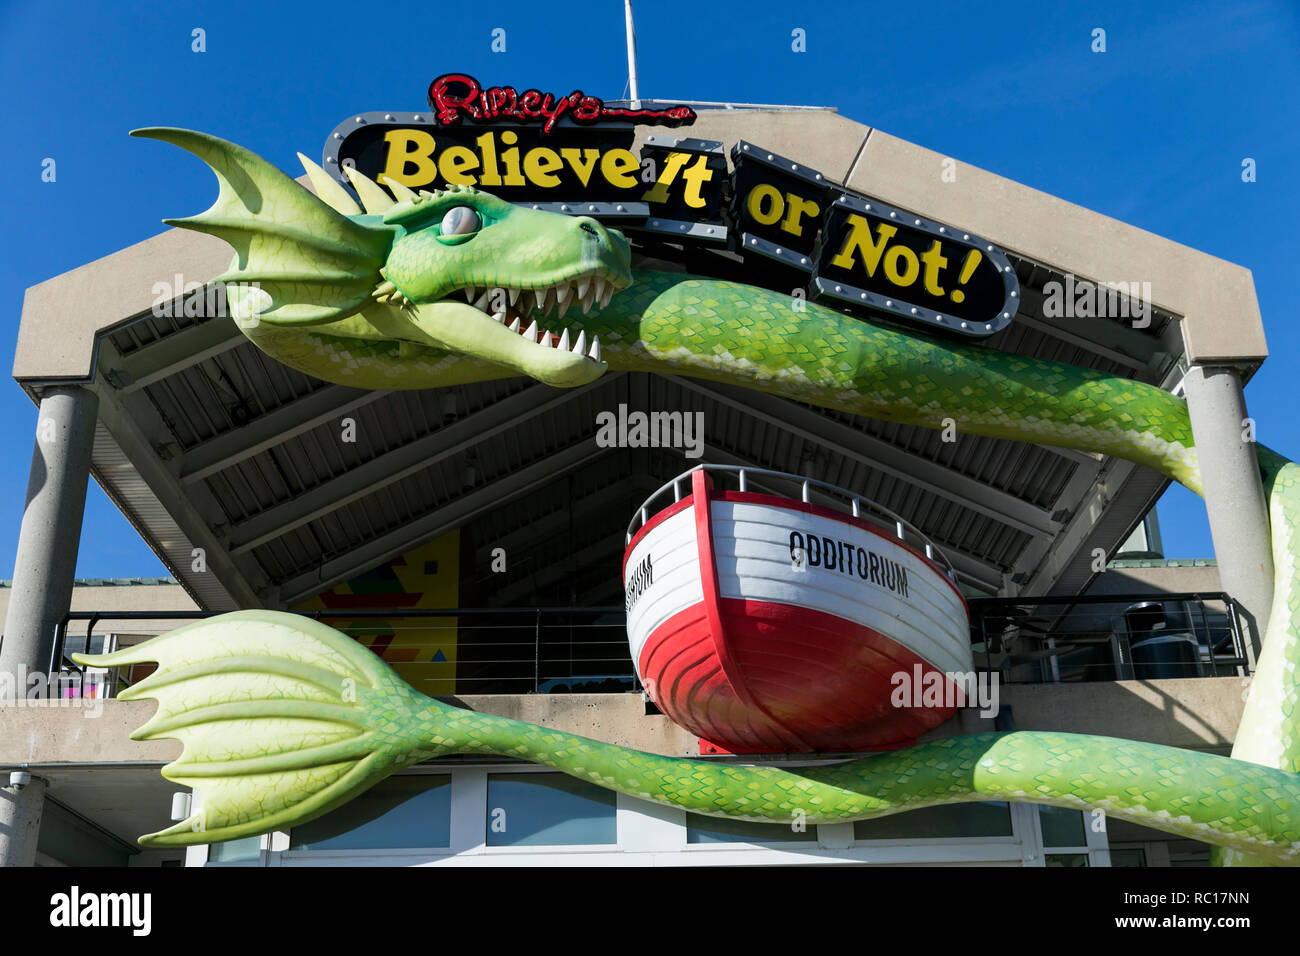 A logo sign outside of a Ripley's Believe It or Not location in Baltimore, Maryland on January 11, 2019. - Stock Image